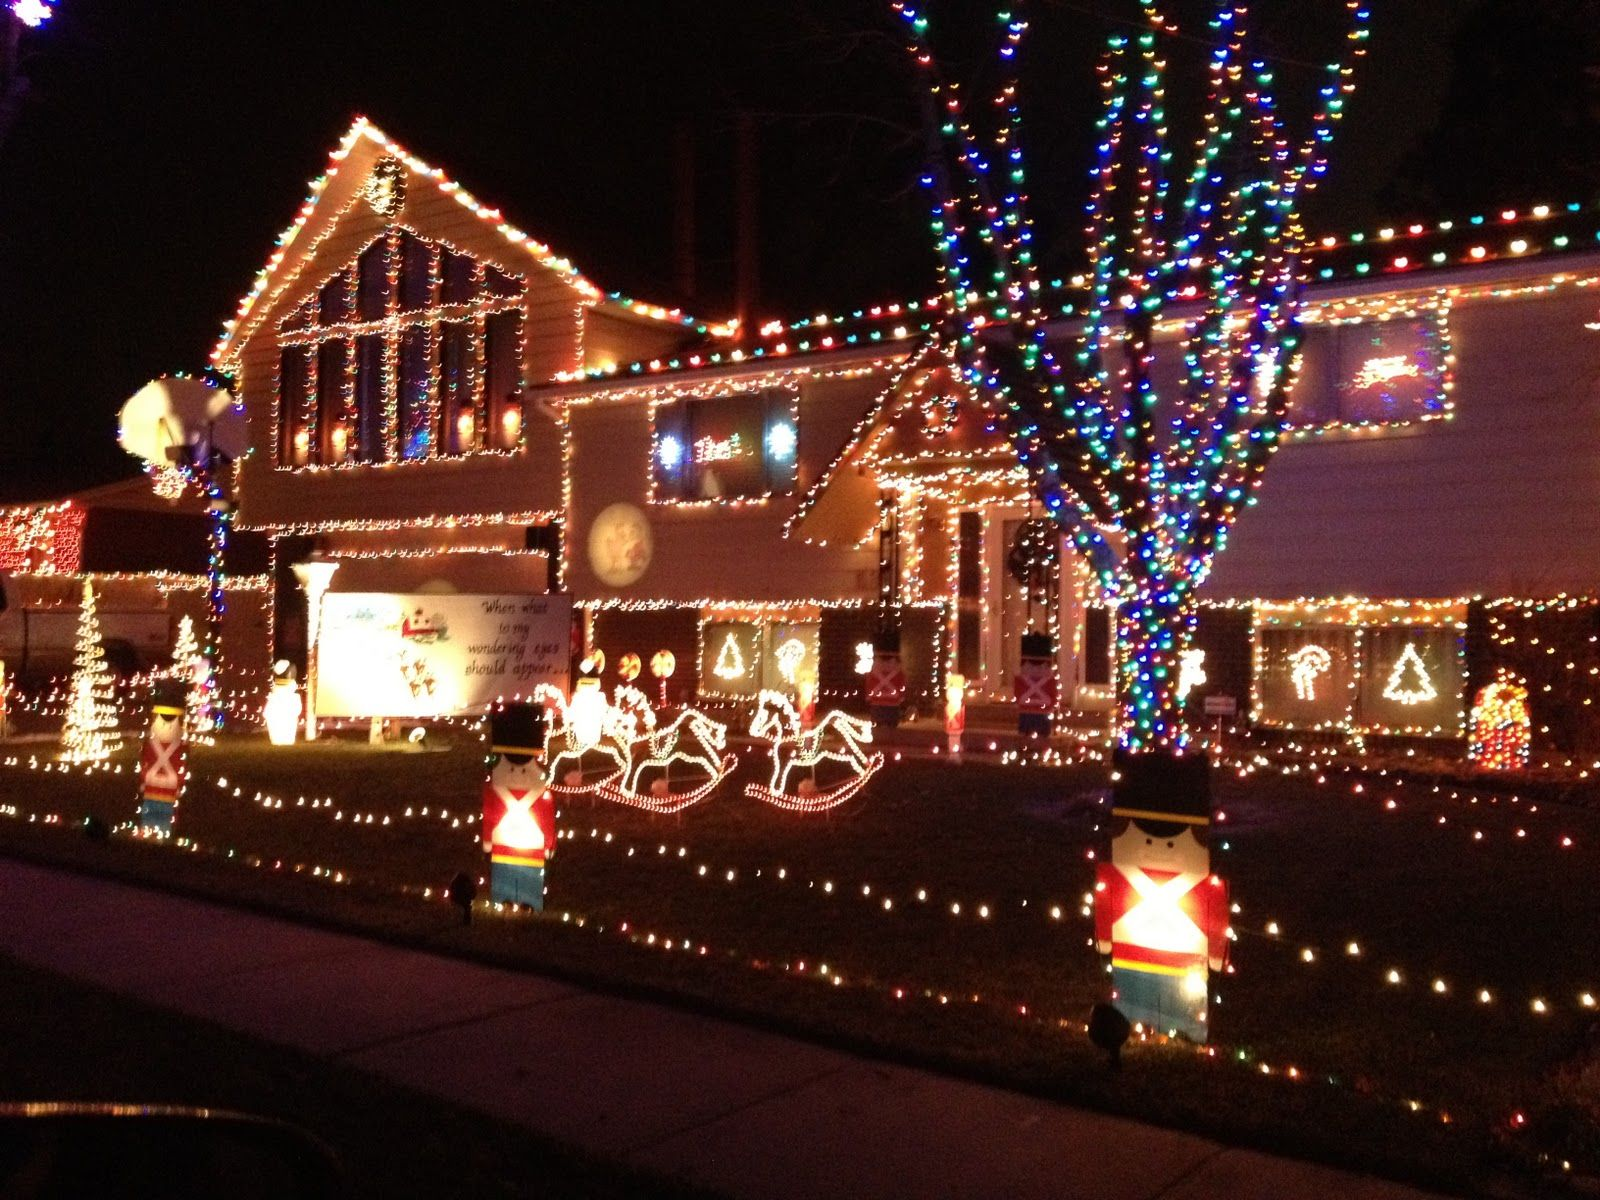 Pictures Of Christmas Lights Google Search Outdoor Christmas Tree Decorations Christmas House Lights Christmas Decorations For The Home